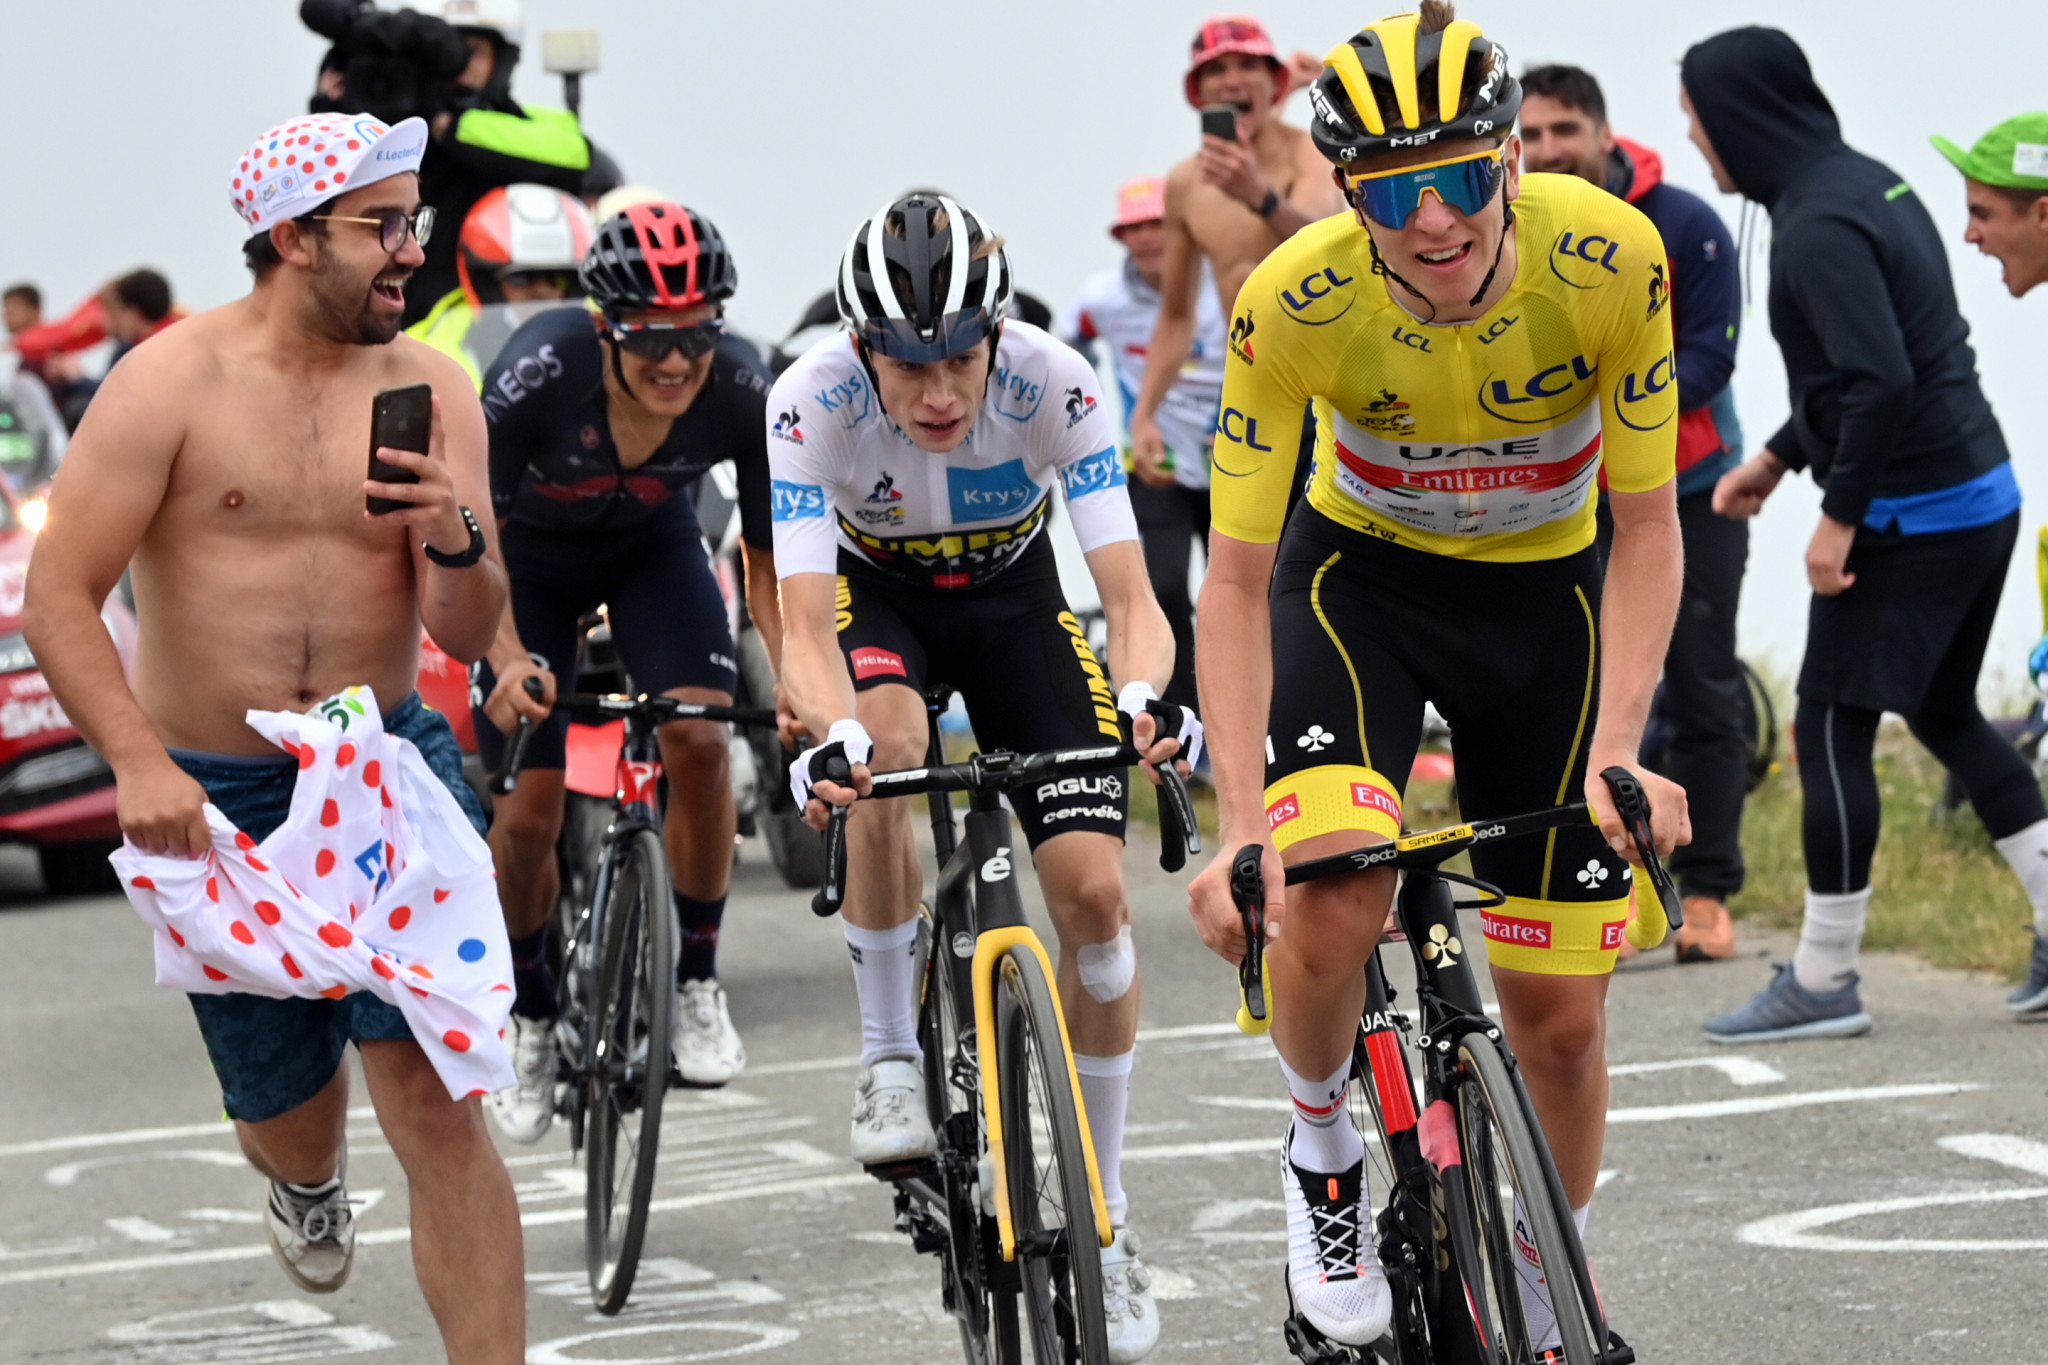 Pogačar wins stage in yellow jersey for first time to extend Tour de France lead